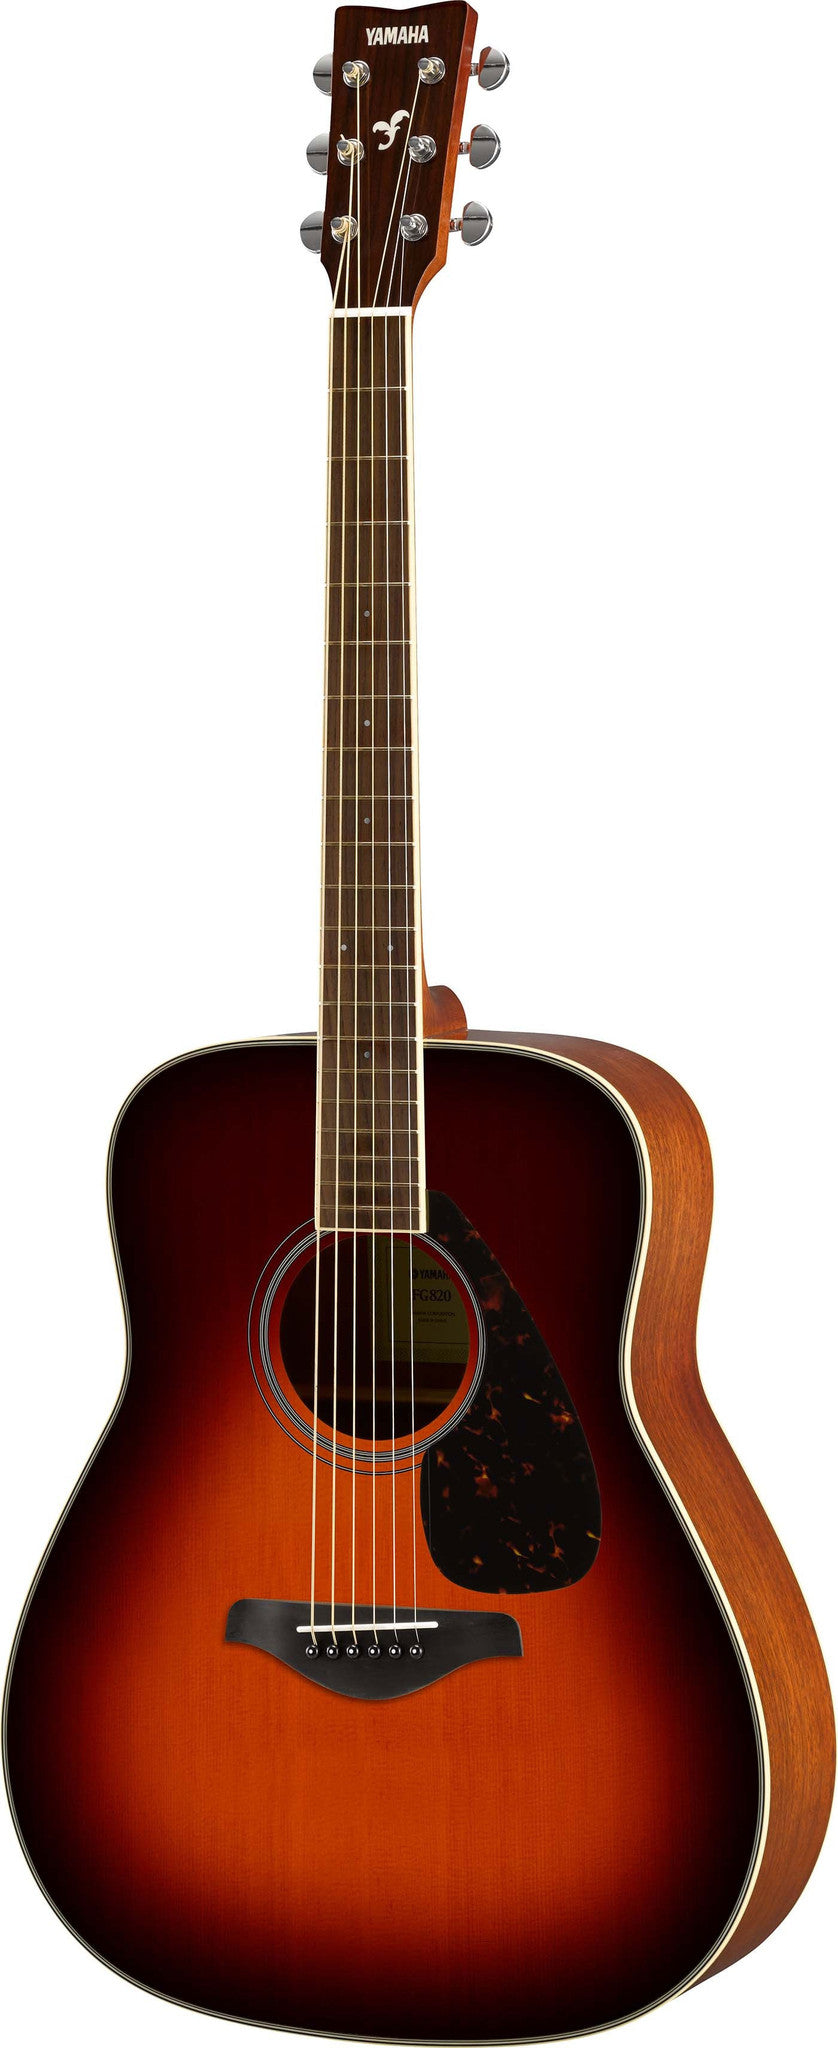 Yamaha FG820BS Dreadnought Acoustic Guitar Bundle